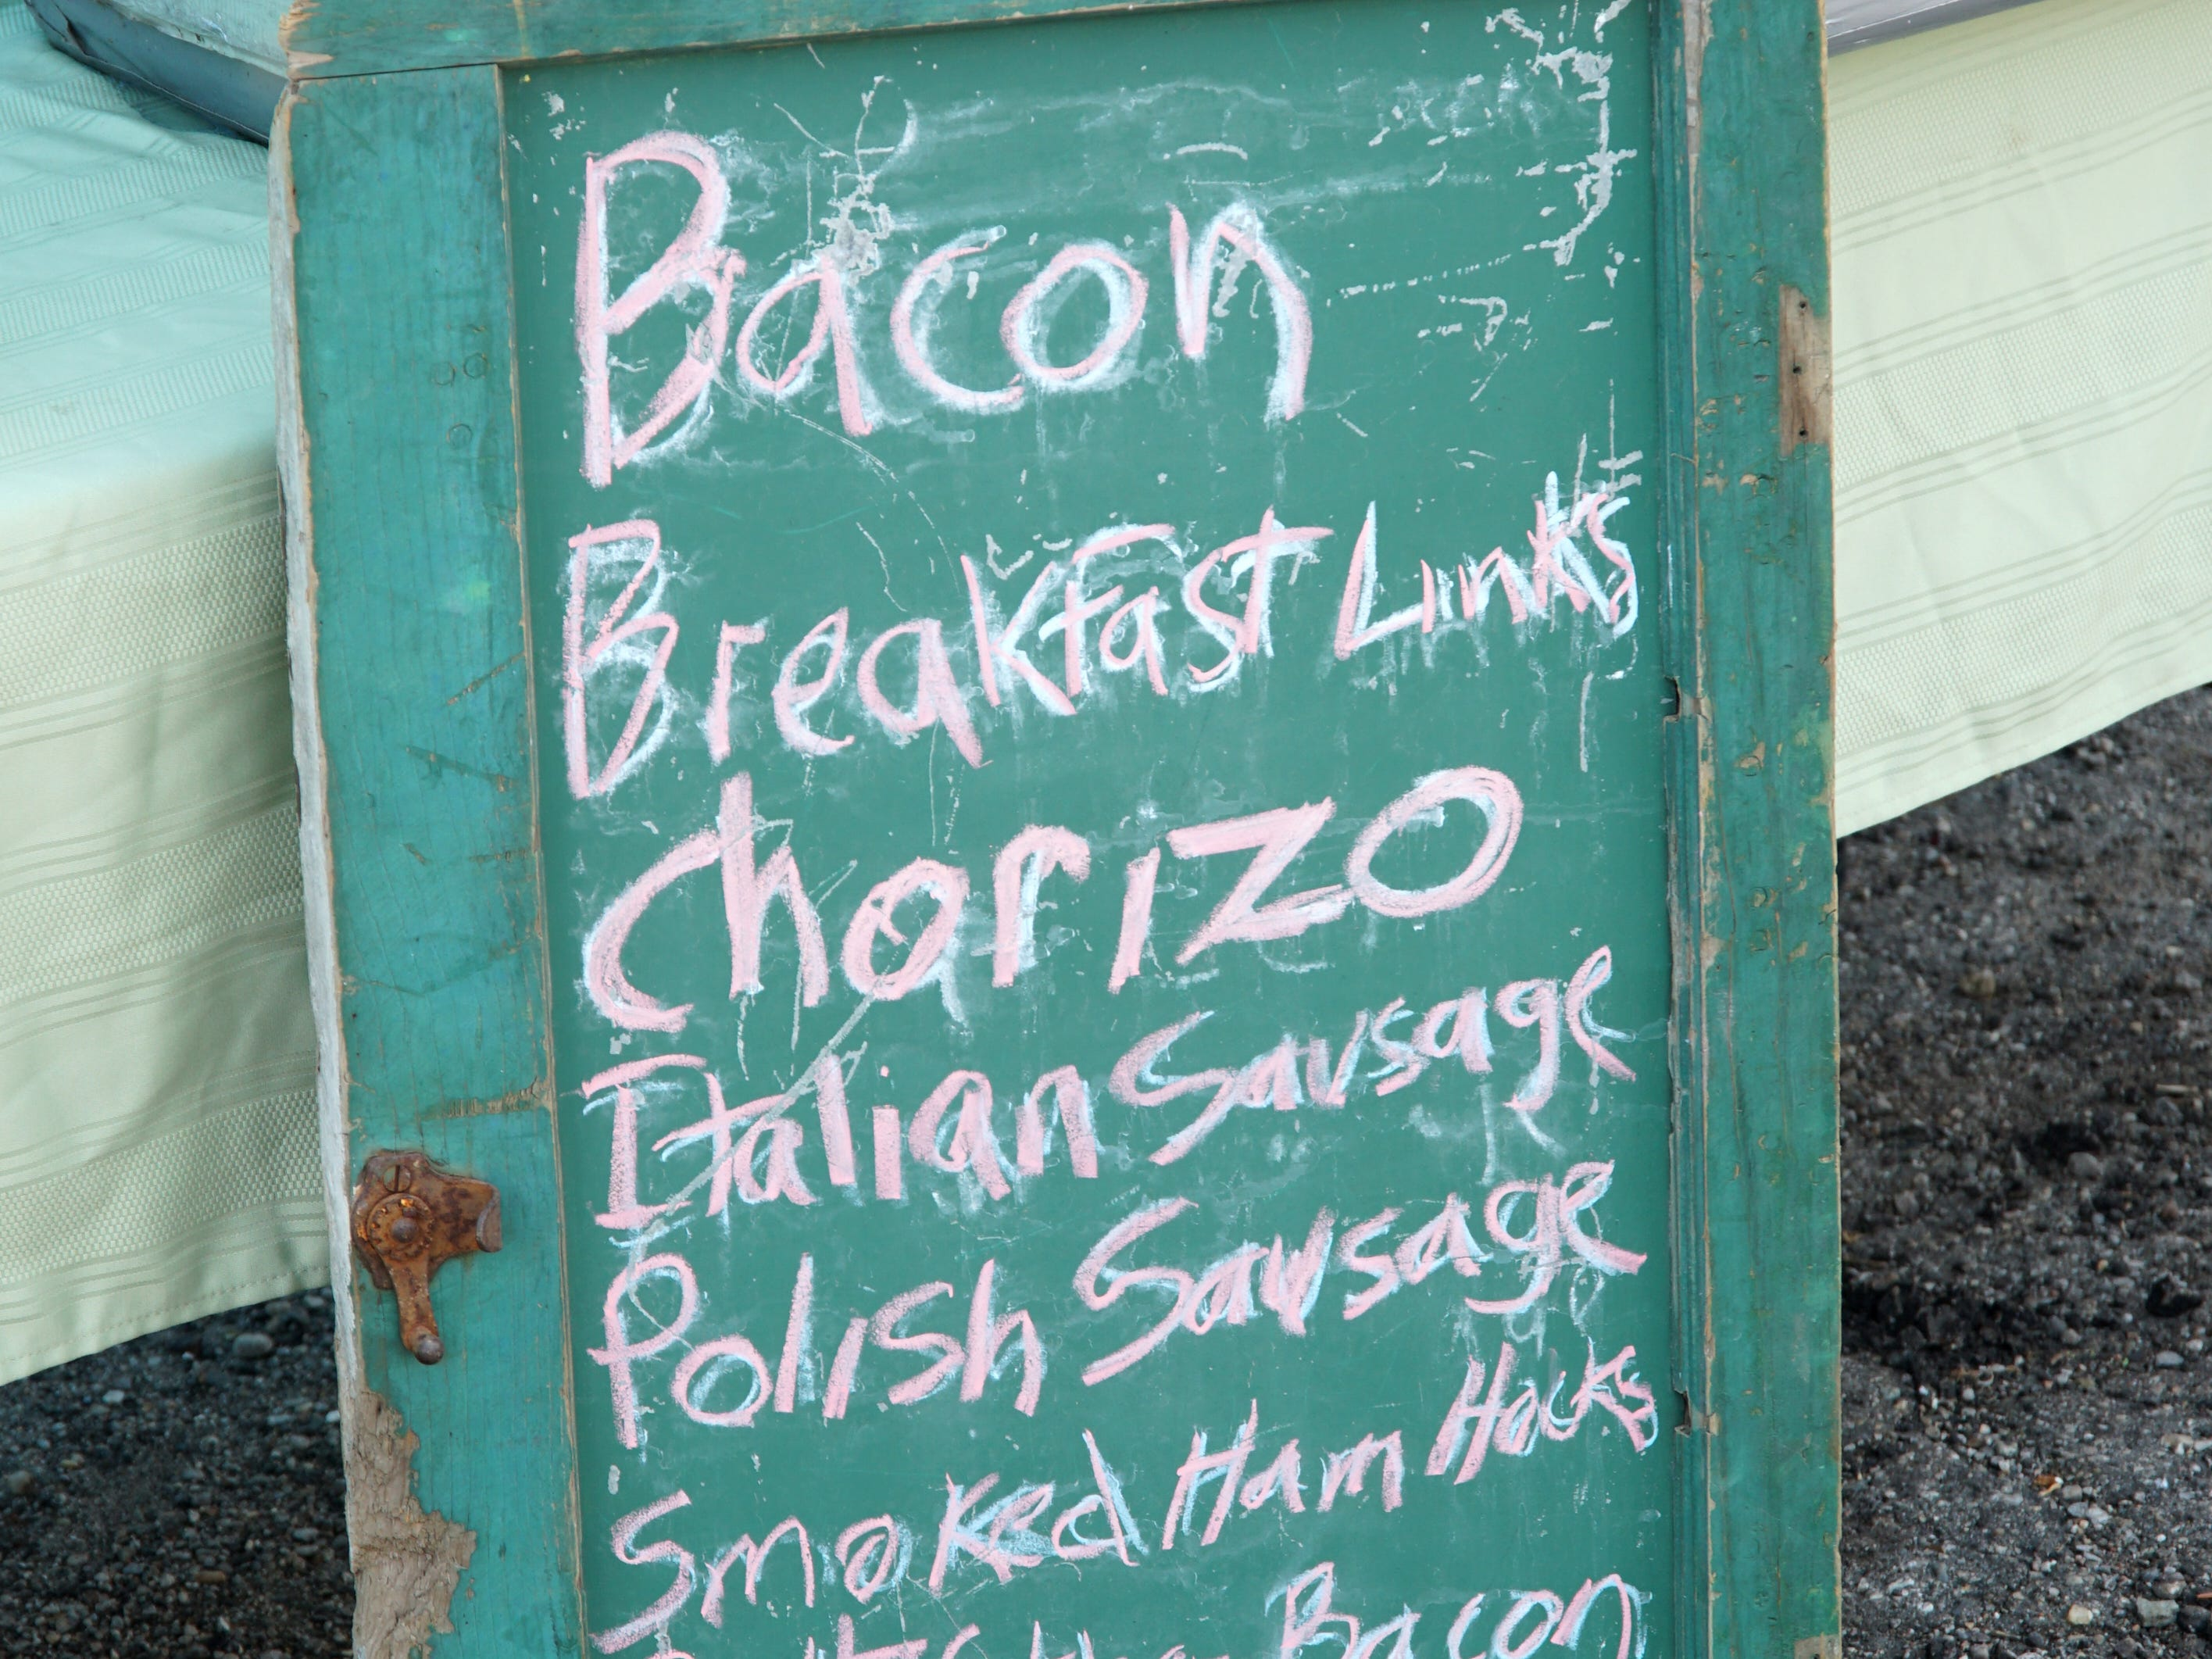 A sandwich board at the May 16 market noting the kinds of pork products a vendor's selling.